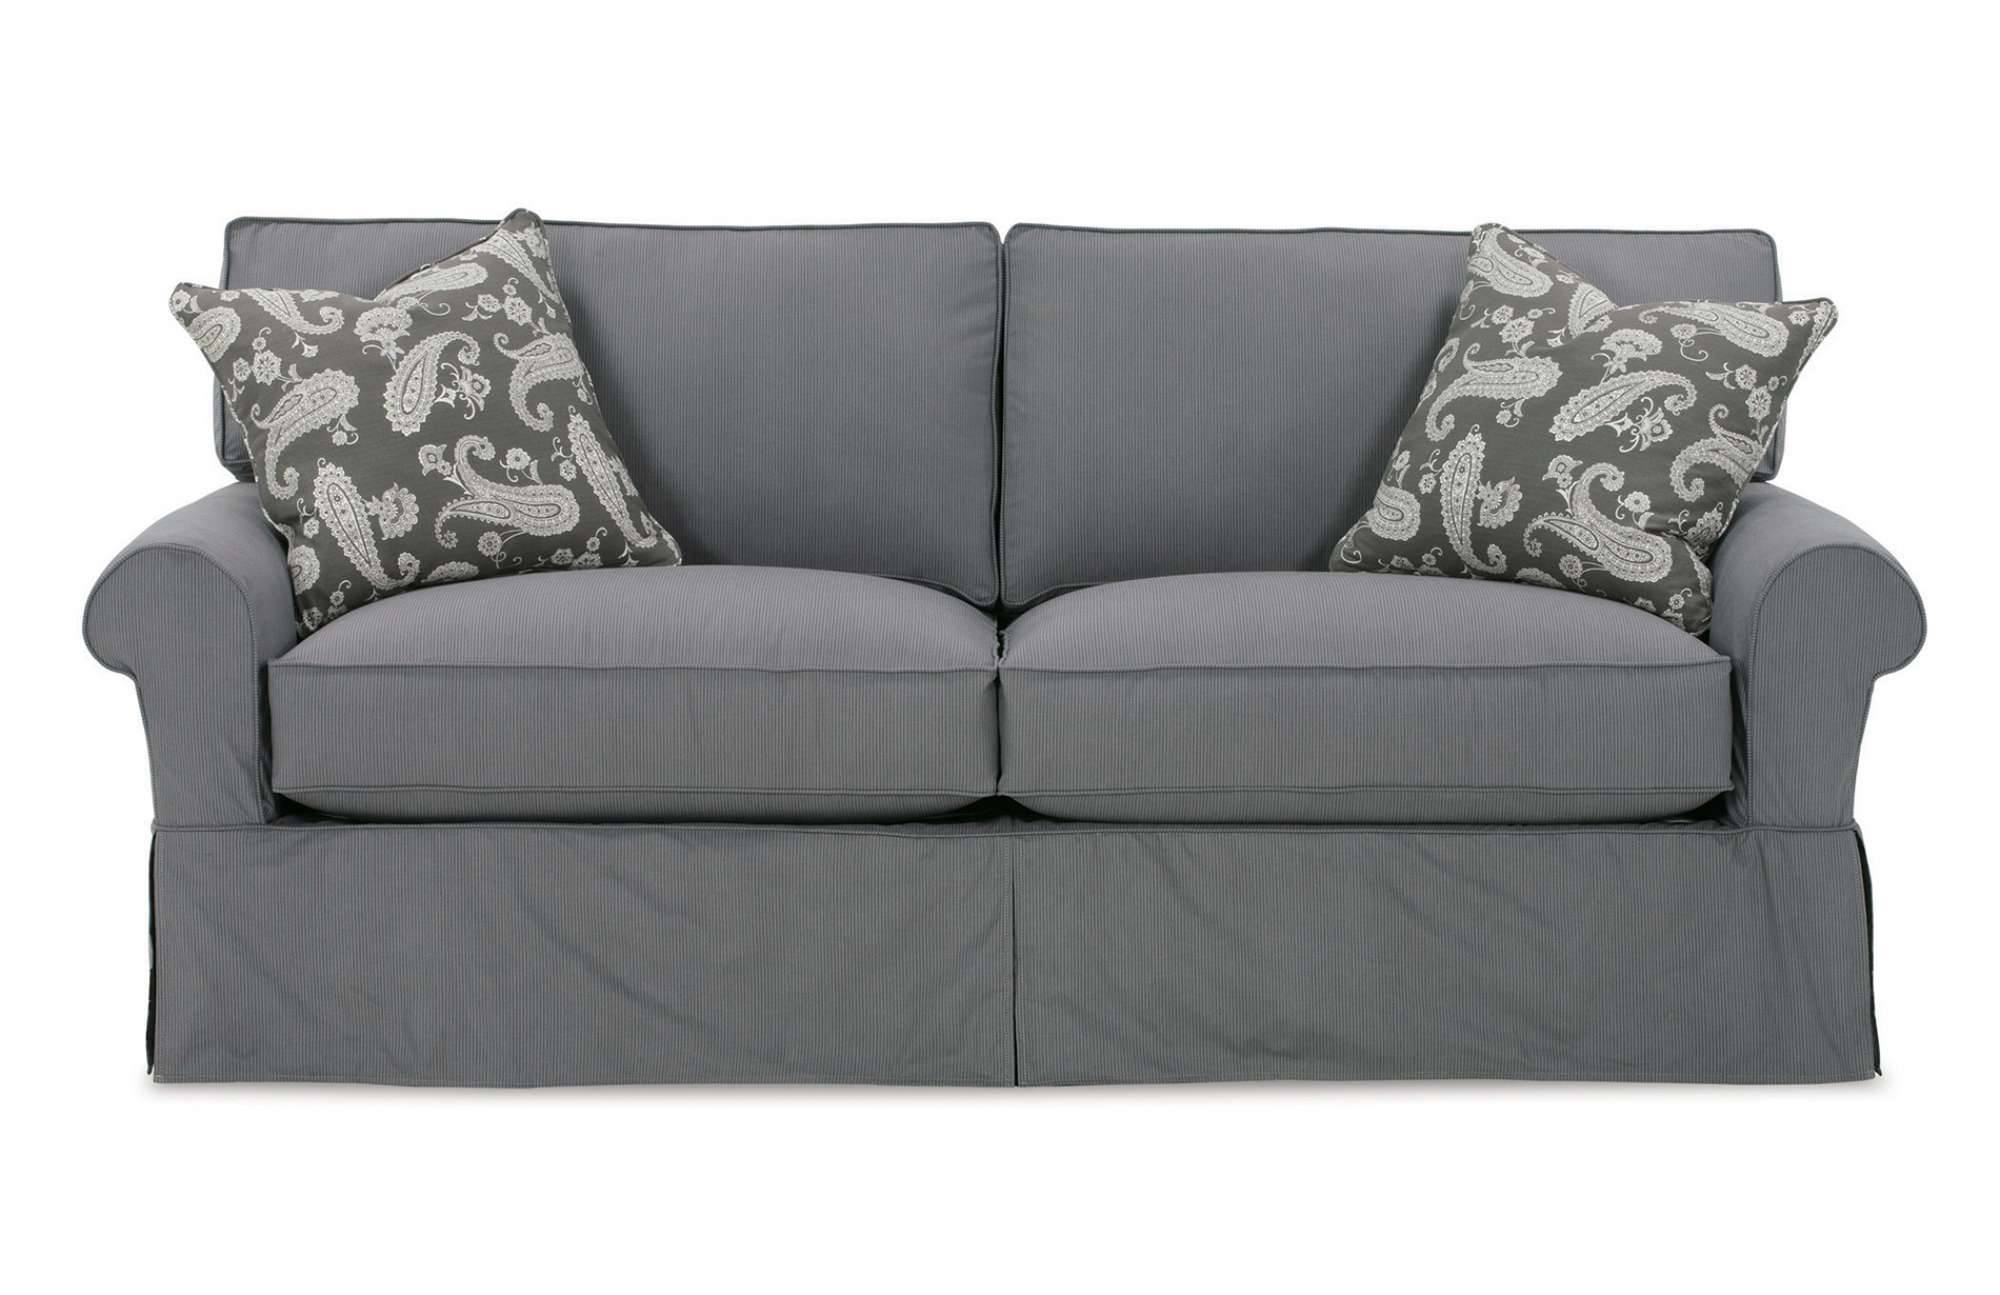 Beautiful Sleeper Sofa Slipcover 28 In Sofas And Couches Set With pertaining to Slipcovers For Sleeper Sofas (Image 2 of 15)